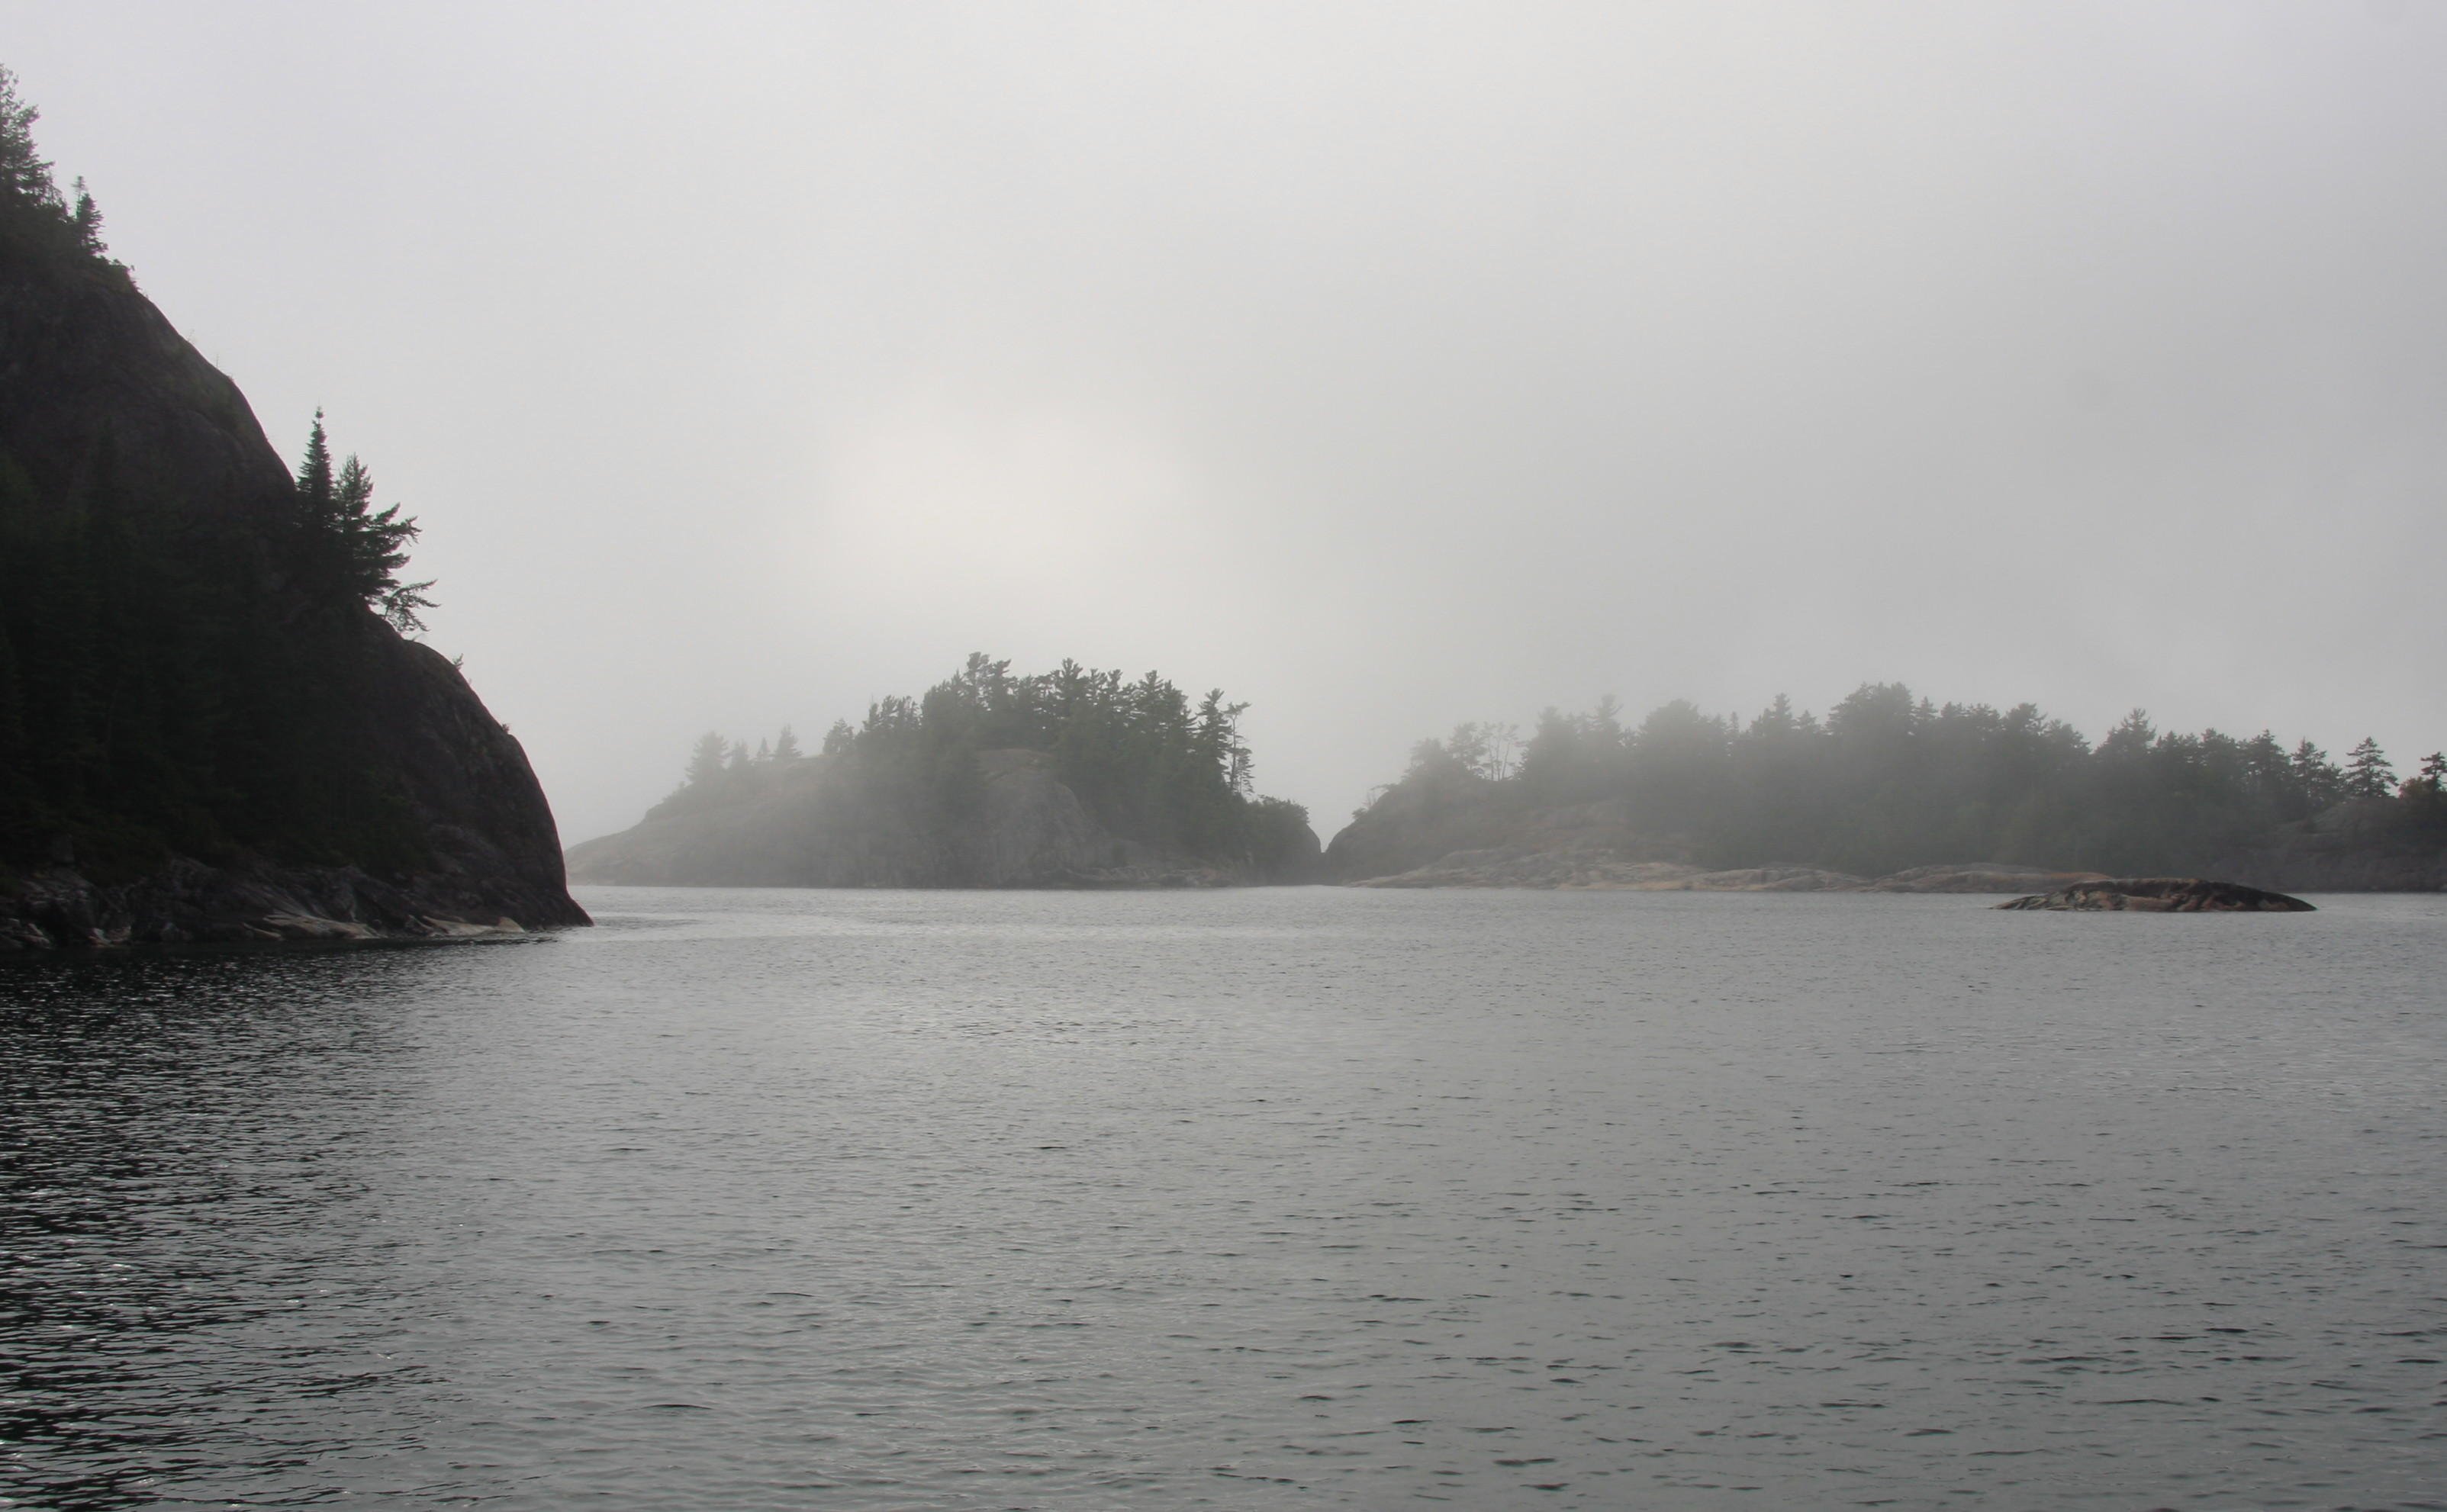 Standing Watch – Batchawana Bay to Sinclair Cove